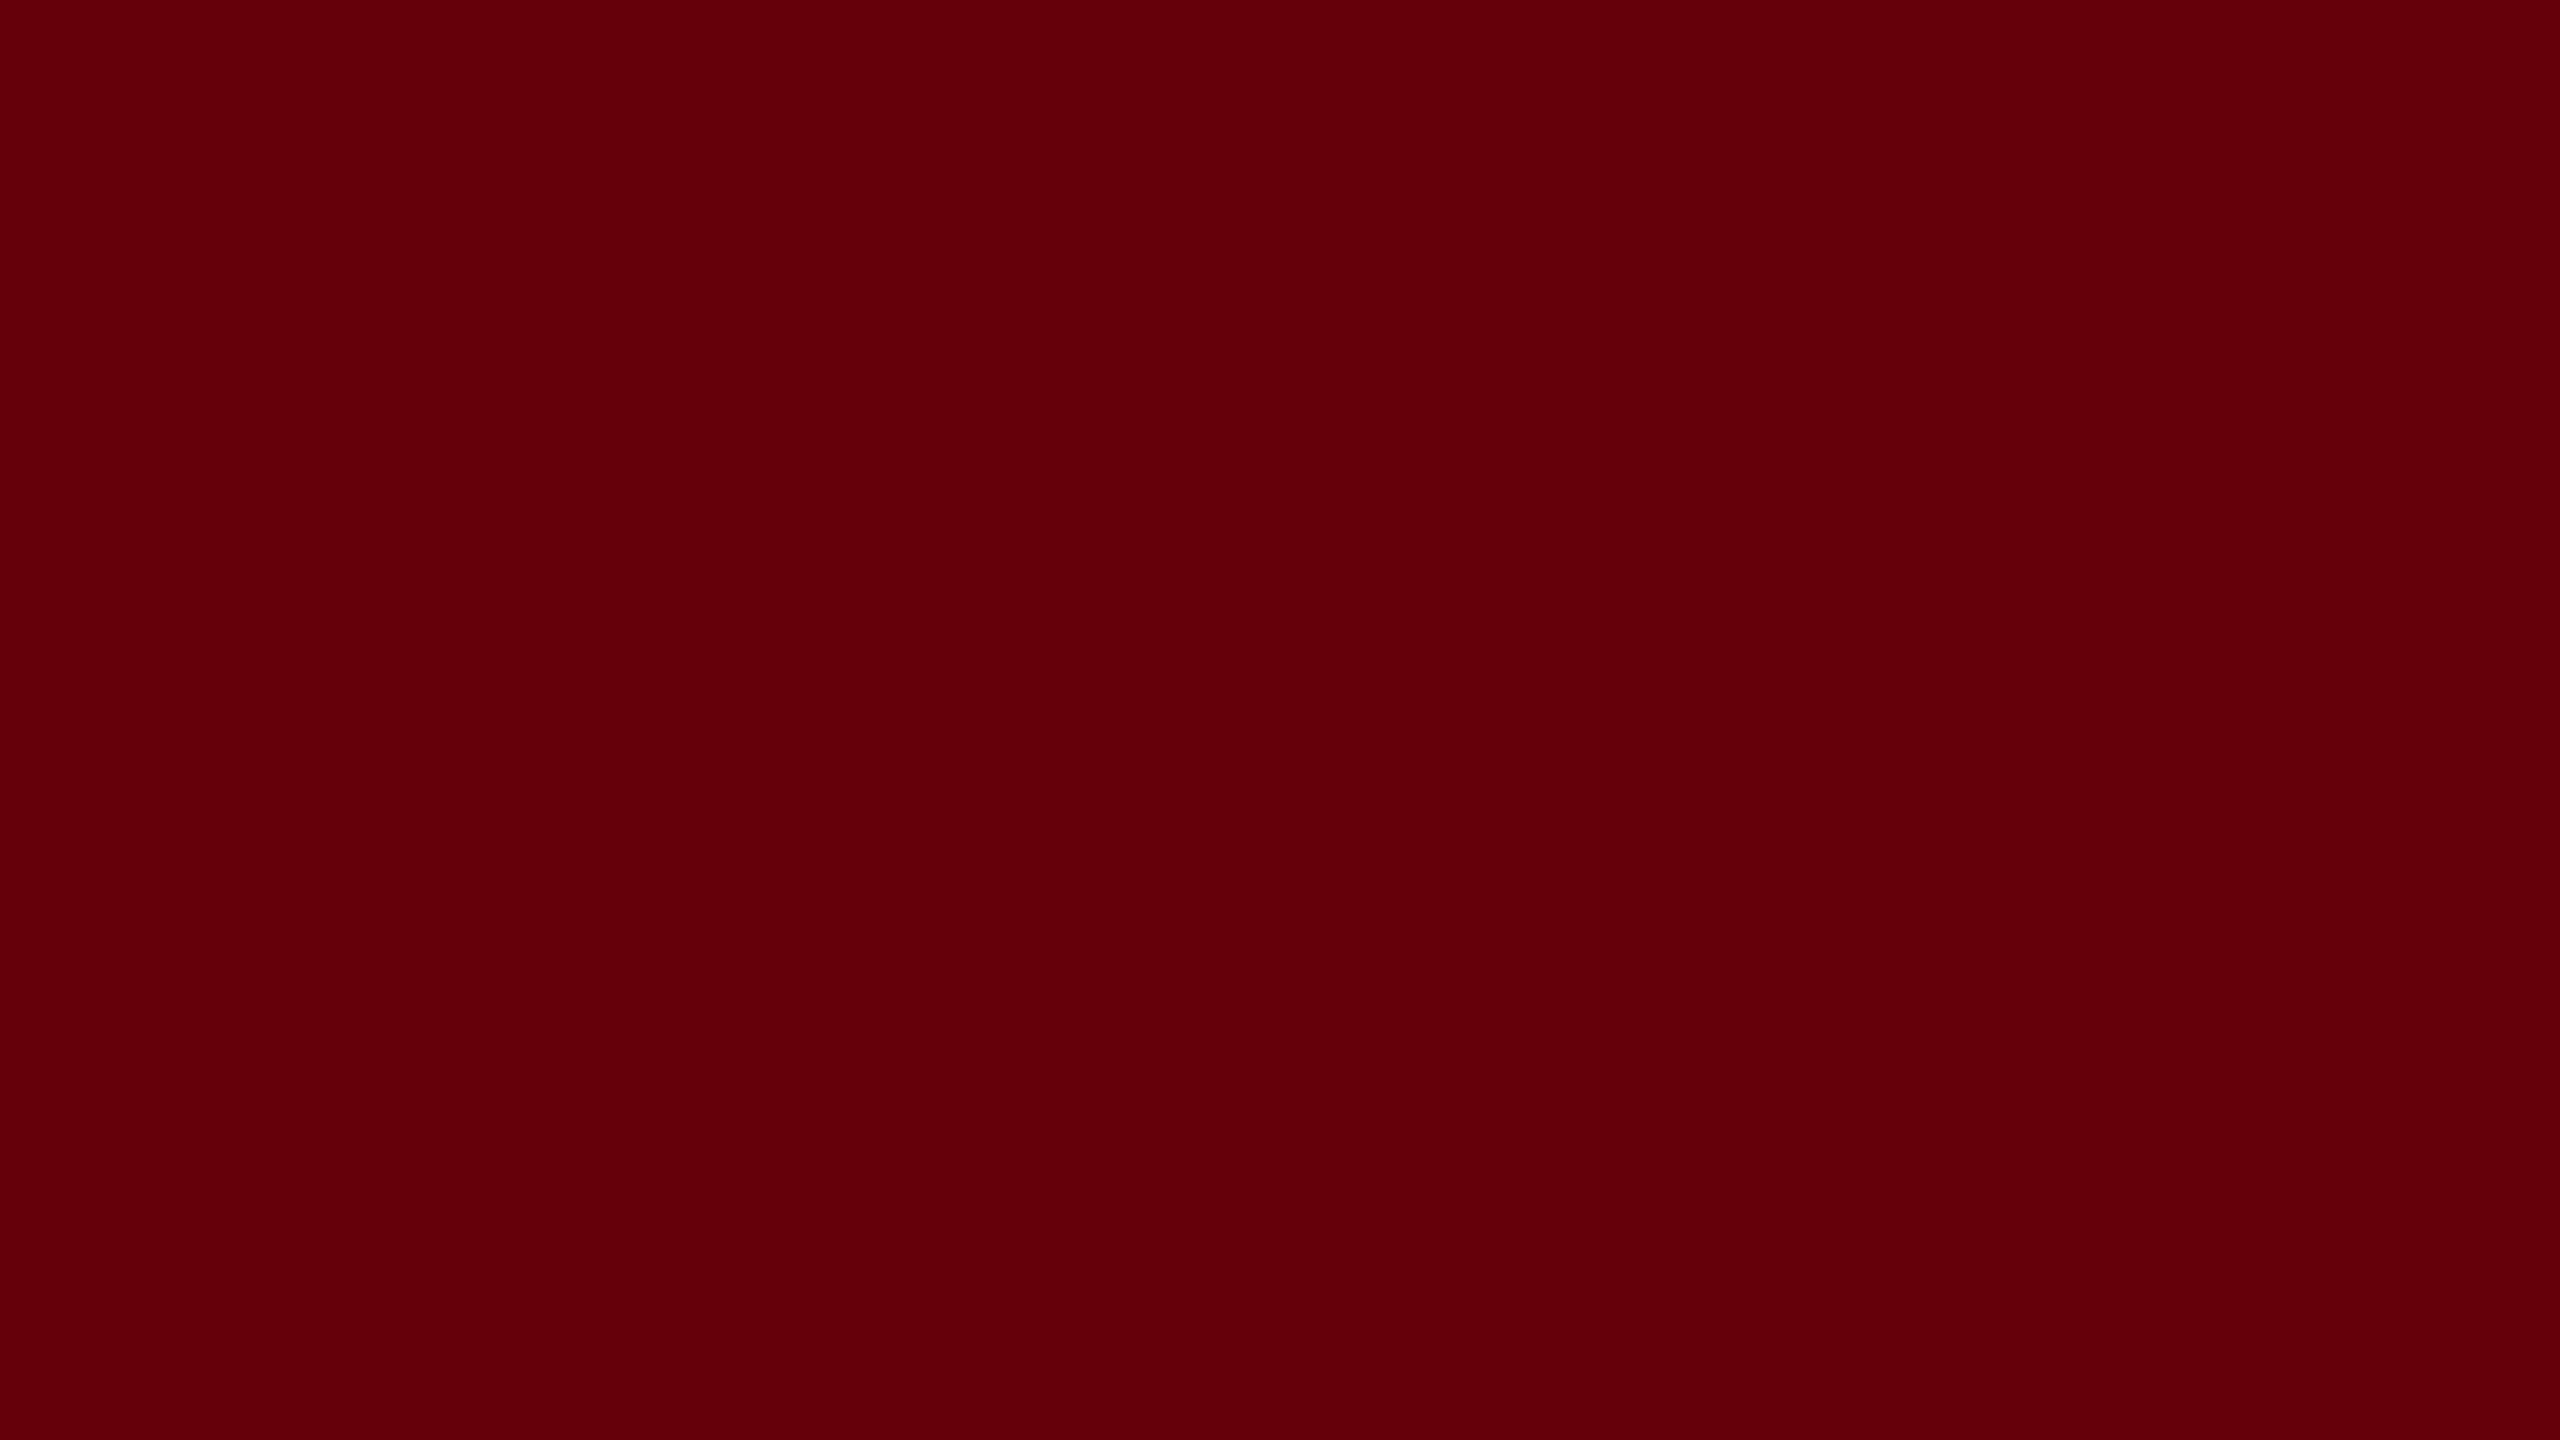 2560x1440 Rosewood Solid Color Background